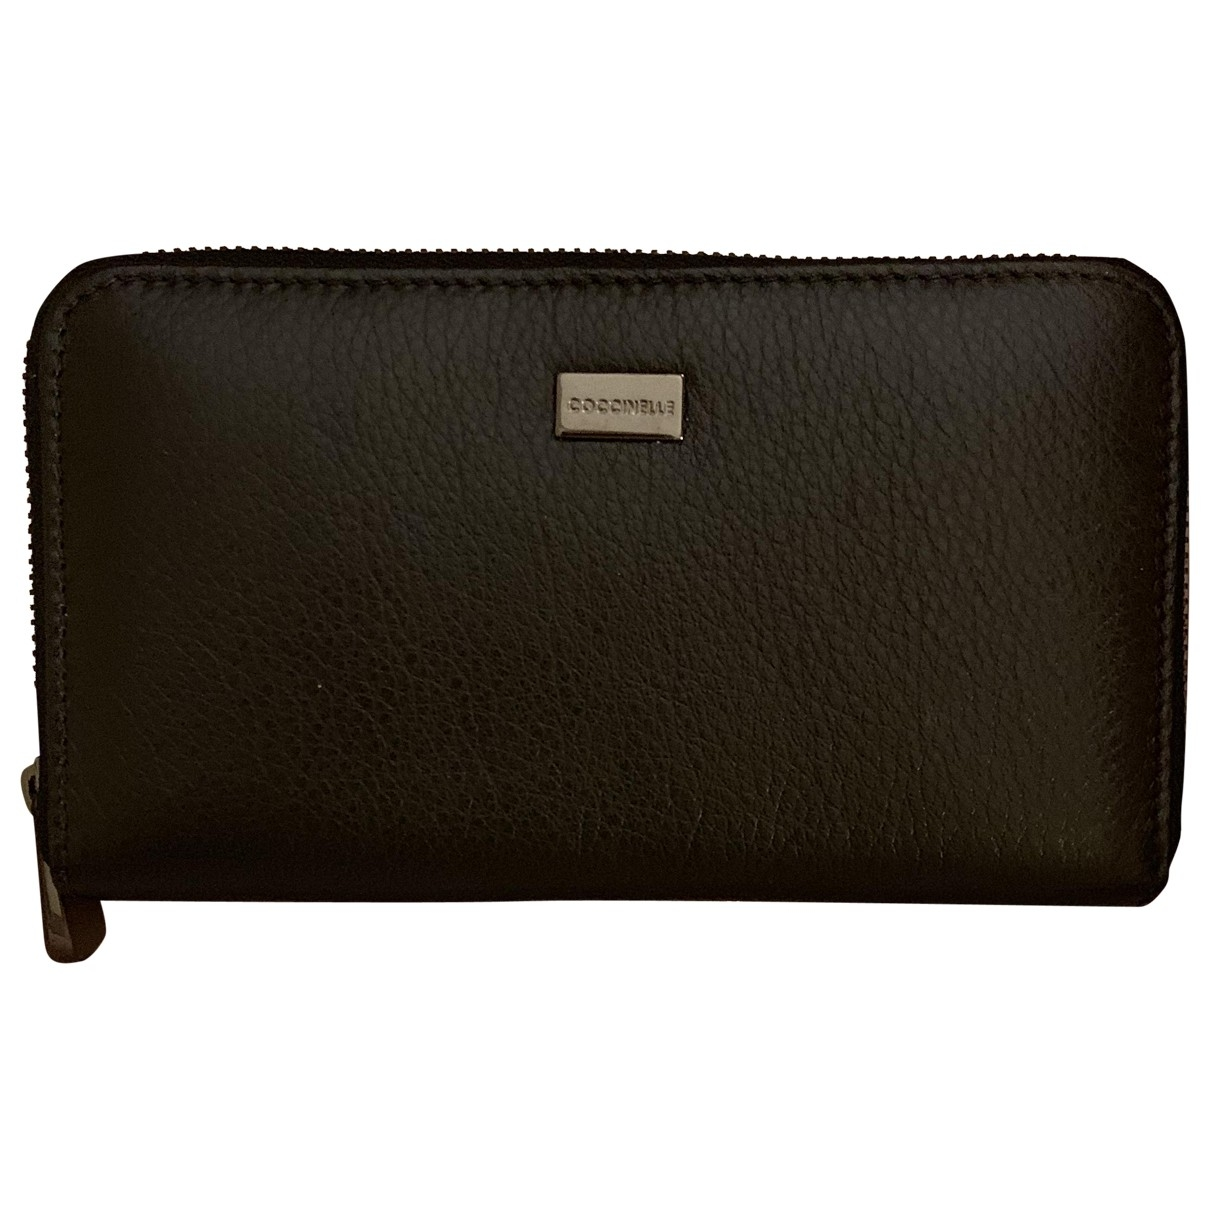 Coccinelle \N Black Leather wallet for Women \N